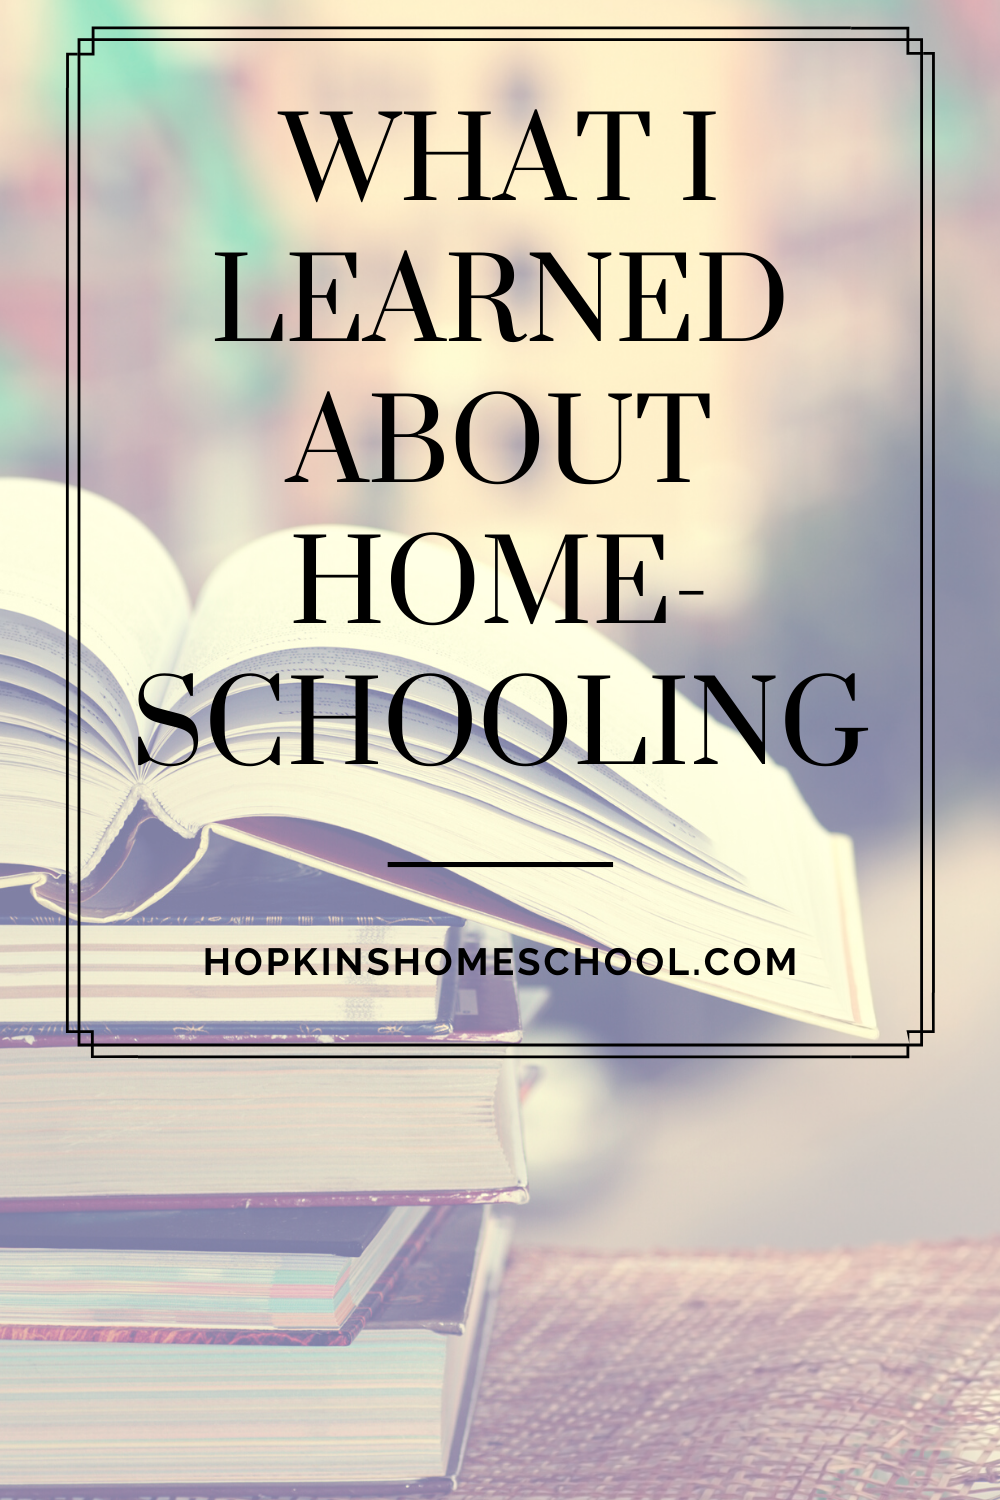 Things I learned about homeschooling